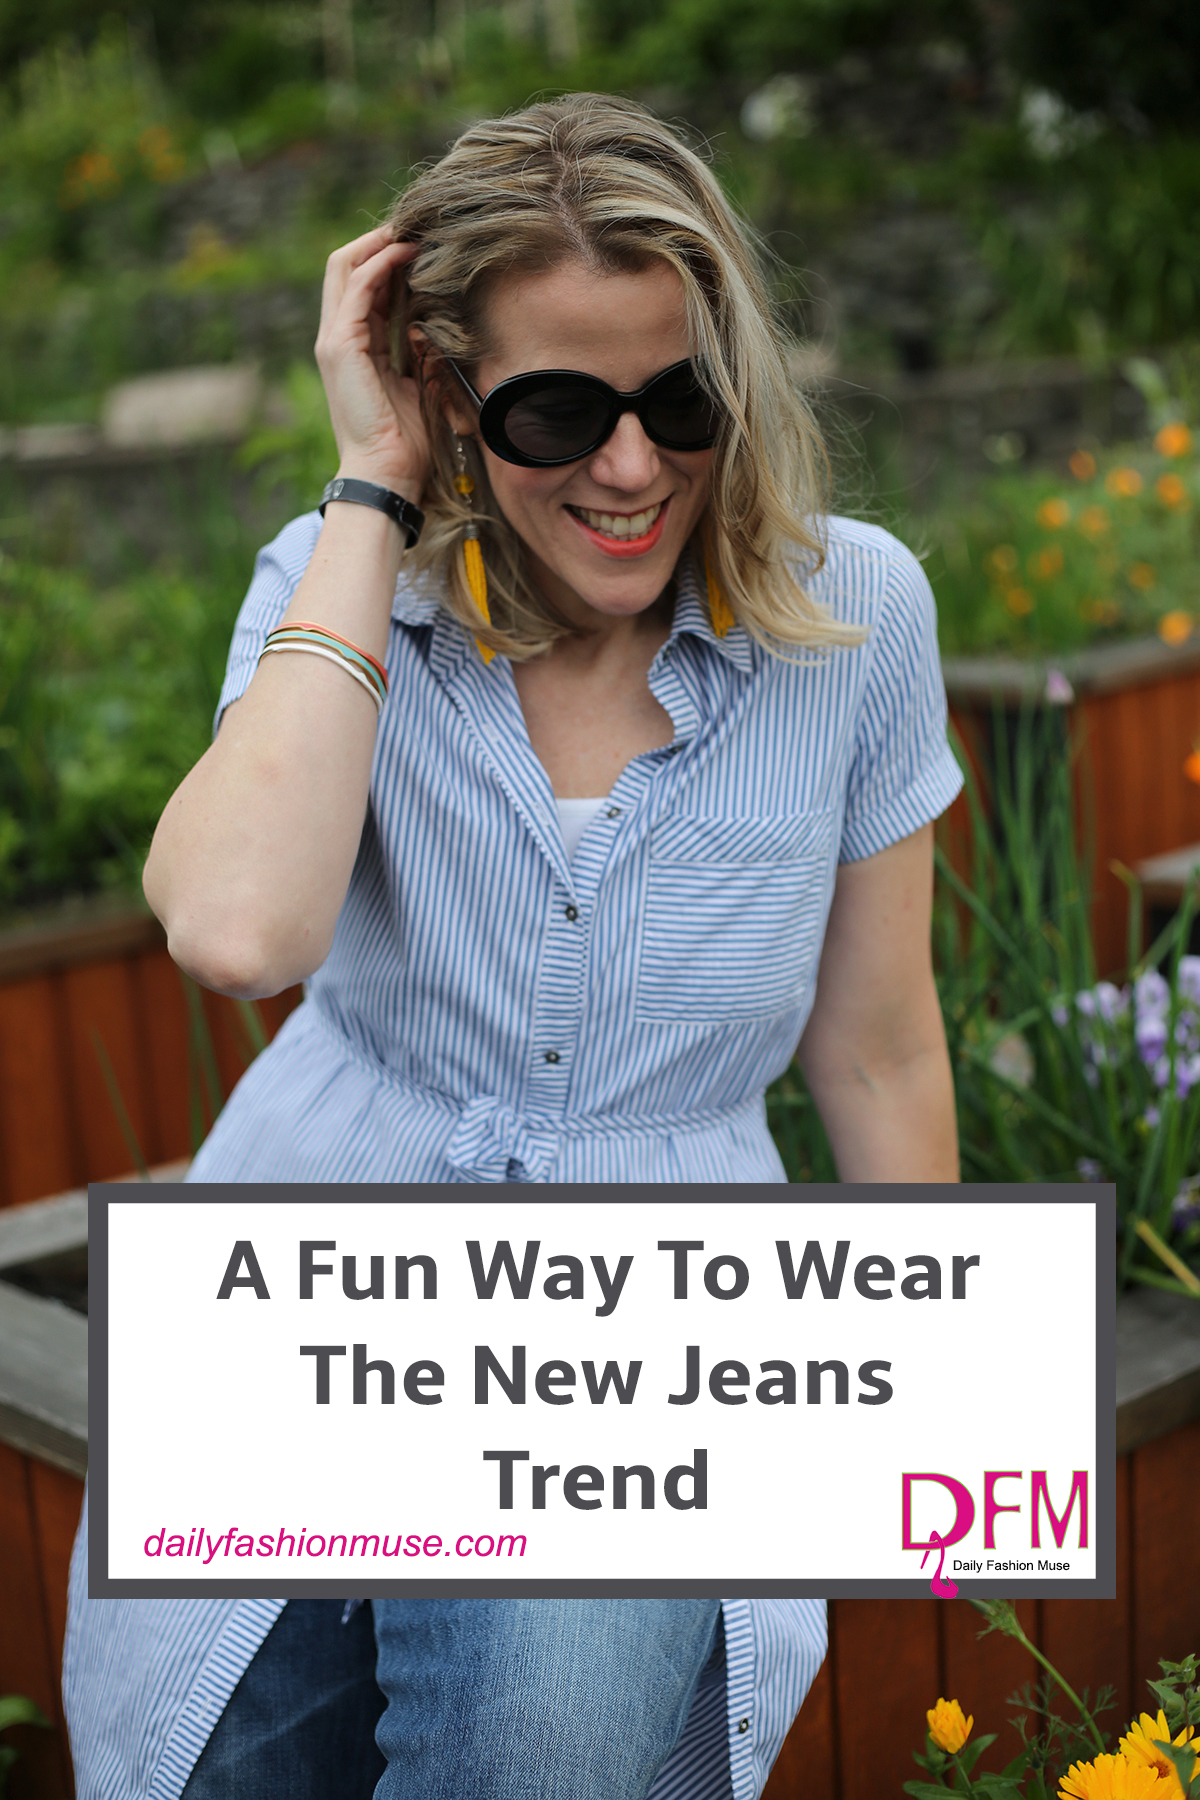 There is a new jeans trend in town and I for one am totally on board. It can be a little intimidating, but the wide leg cropped jean is very flattering. -Daily Fashion Muse